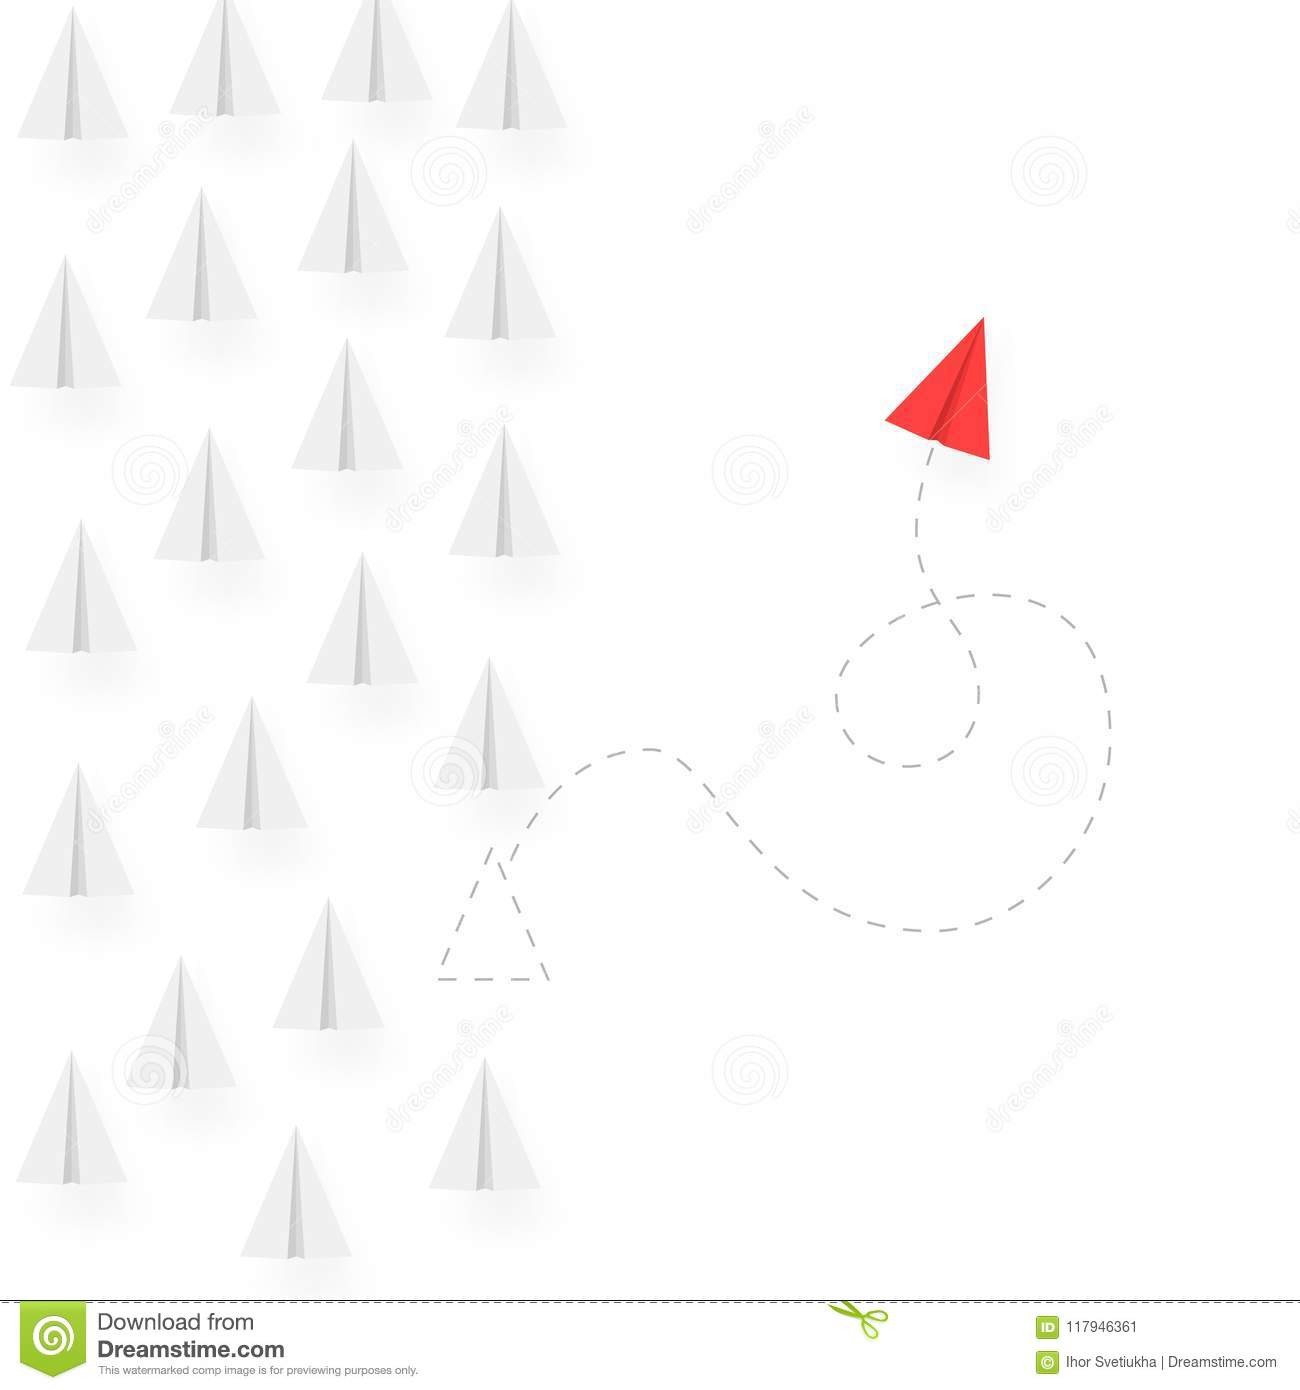 Think different business concept illustration. Red airplane changing direction and move different way. Vector